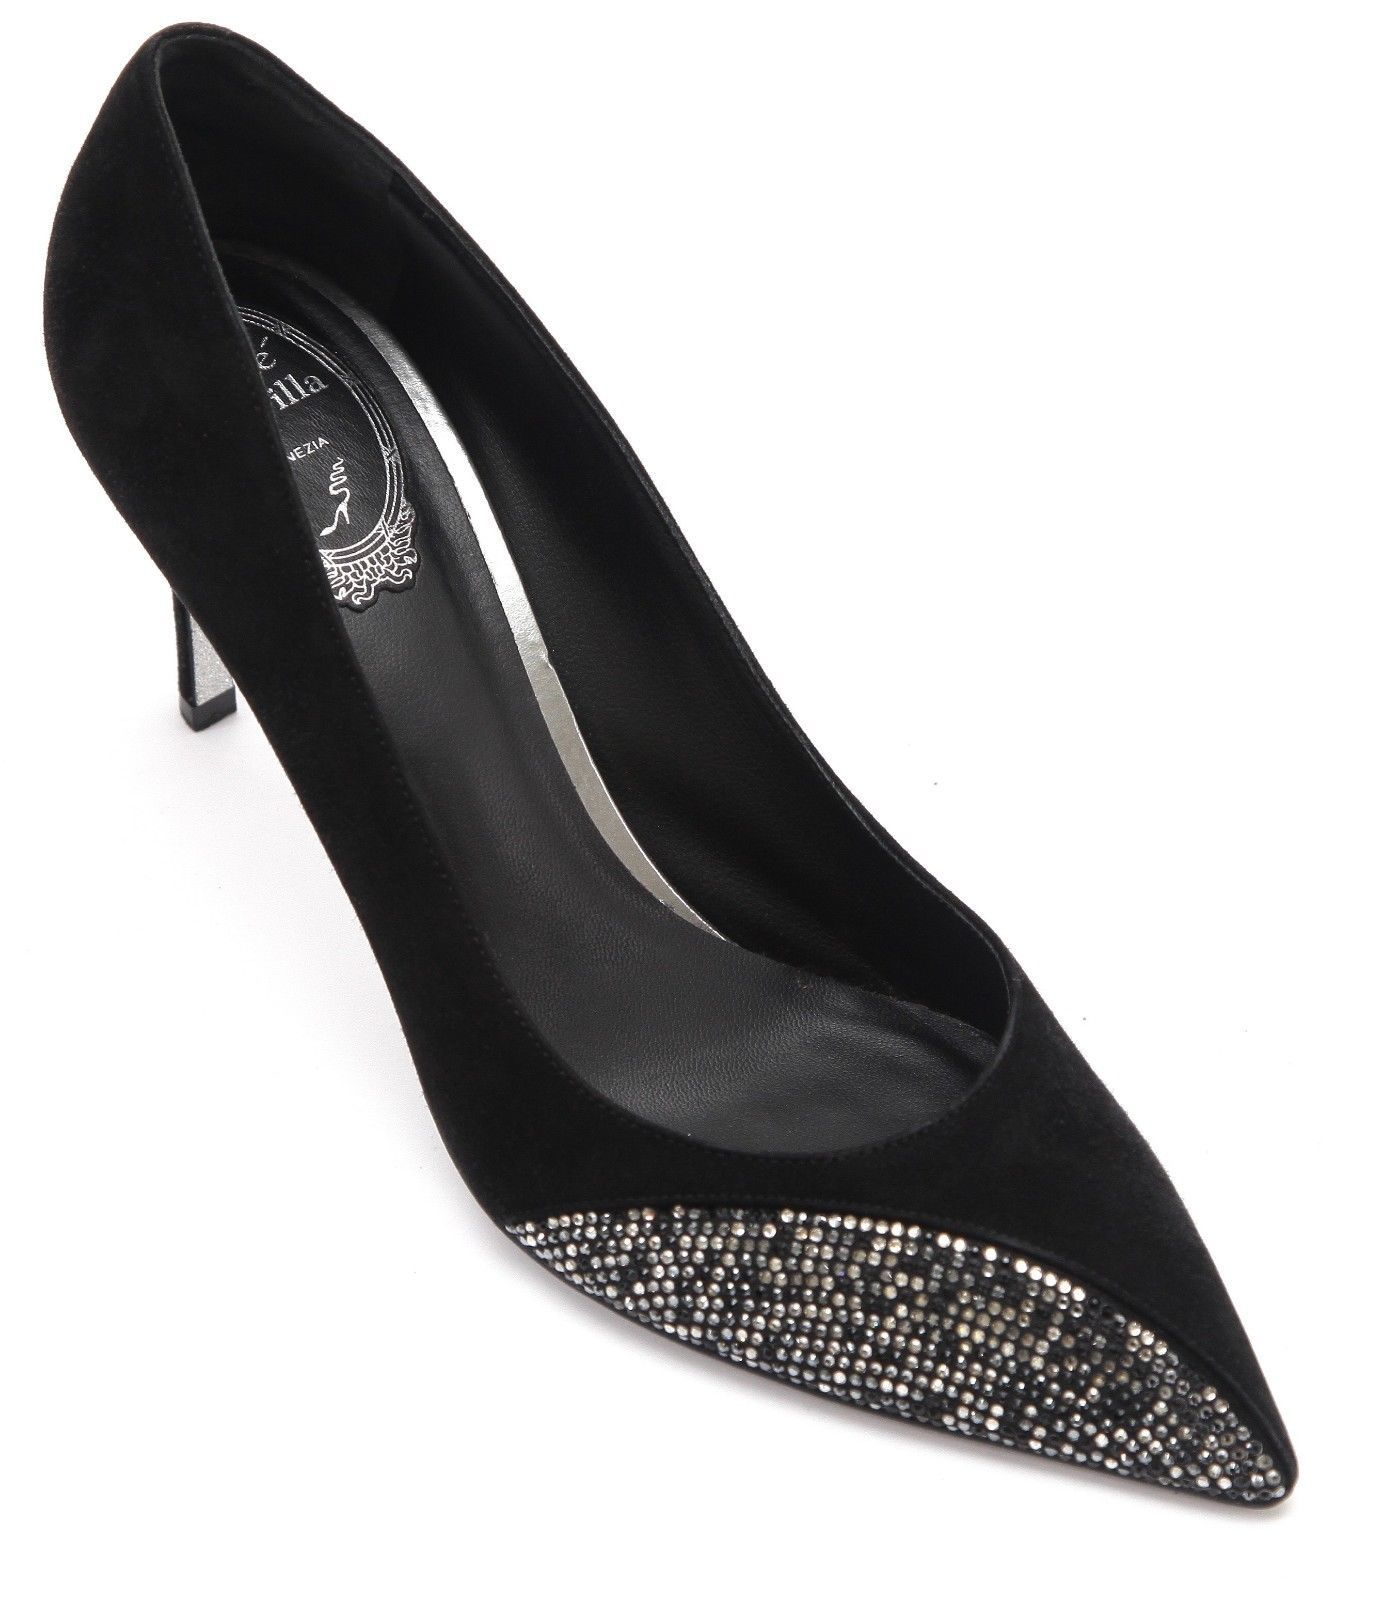 Primary image for RENE CAOVILLA Black Suede Pump Crystal Pointed Toe Heel Sz 40